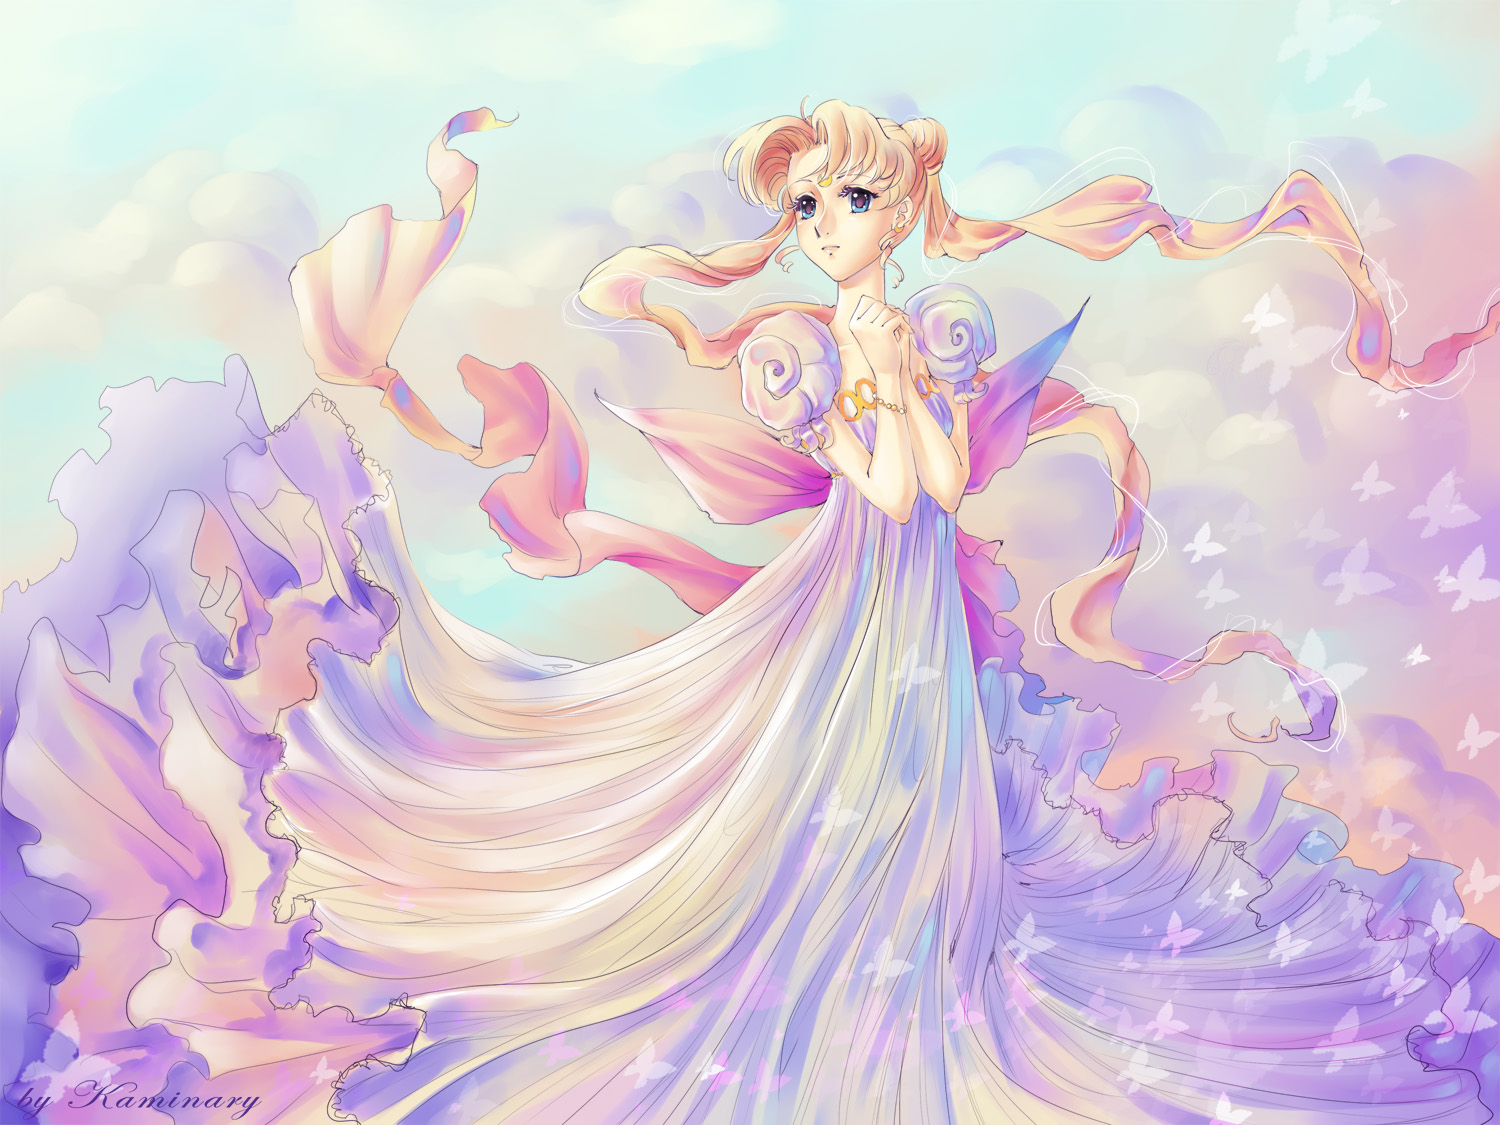 princess serenity, wallpaper - zerochan anime image board